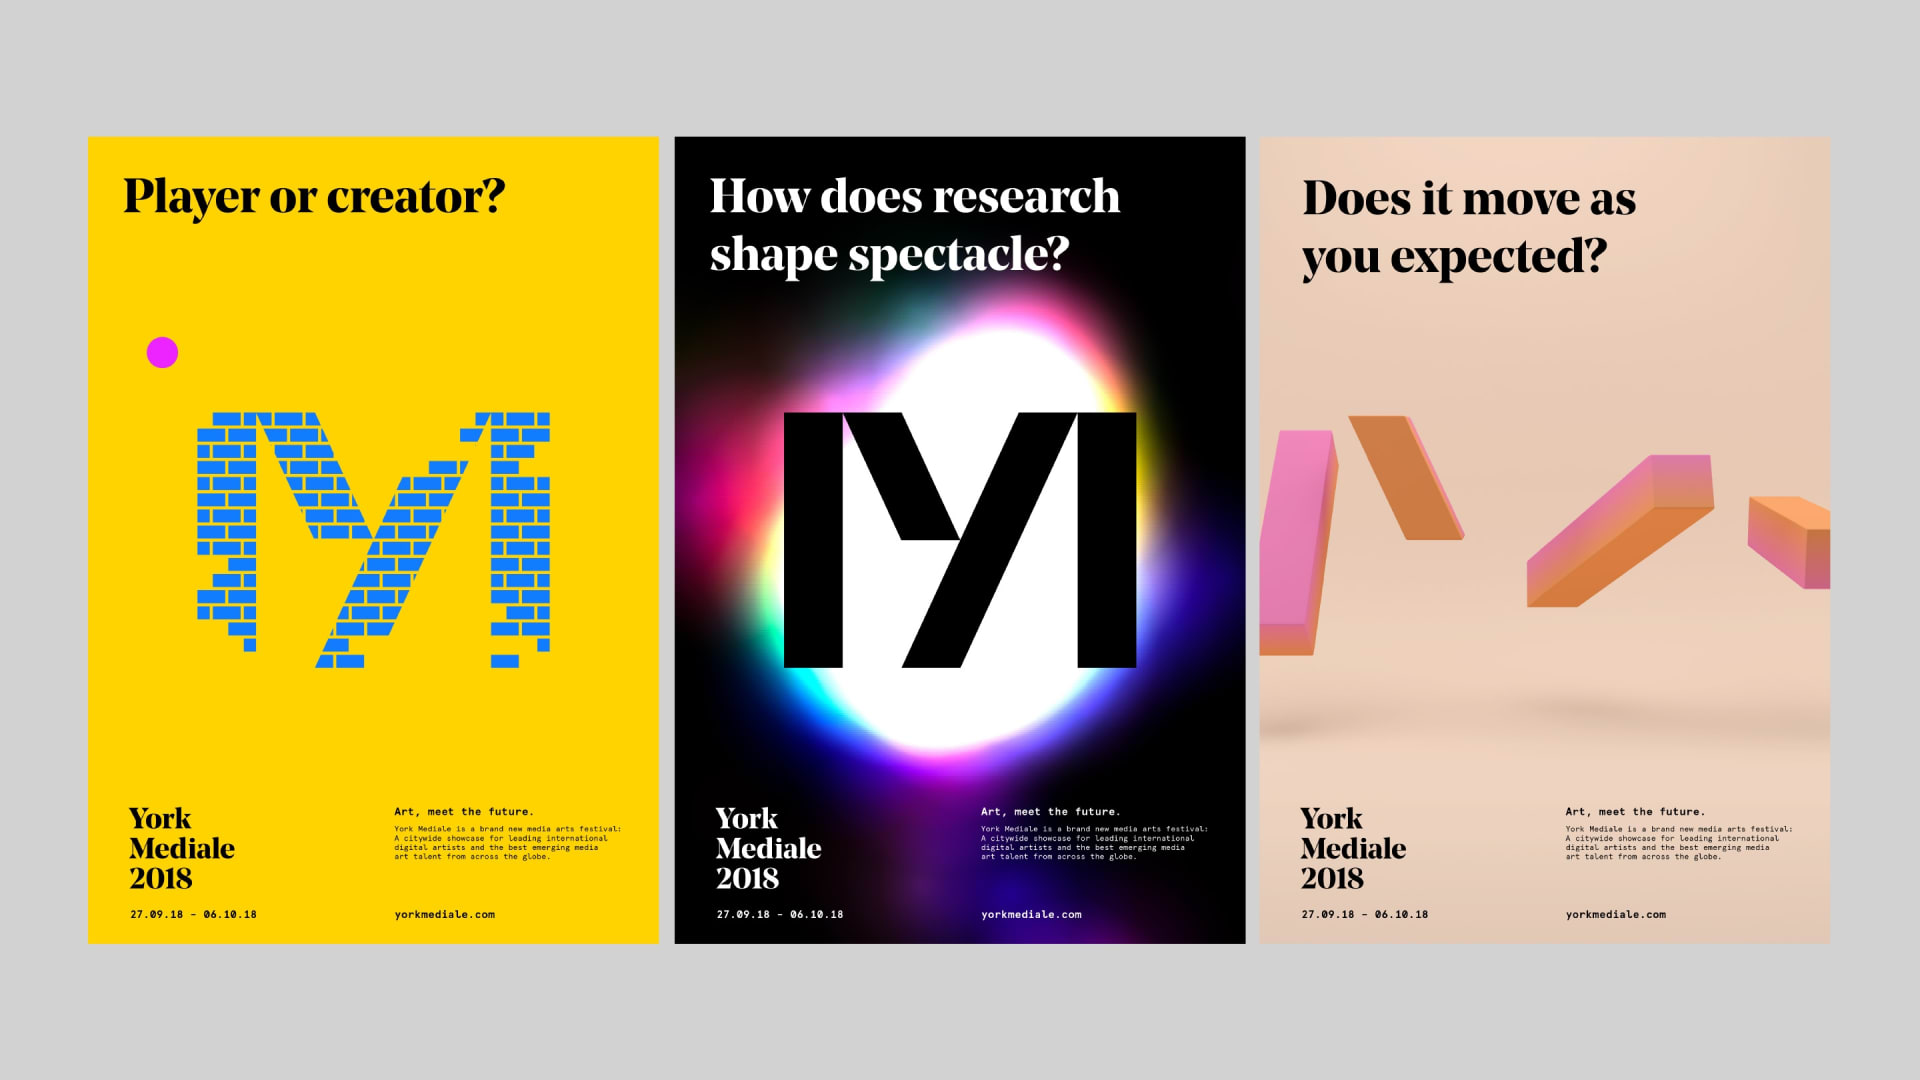 York Mediale questions and ident posters